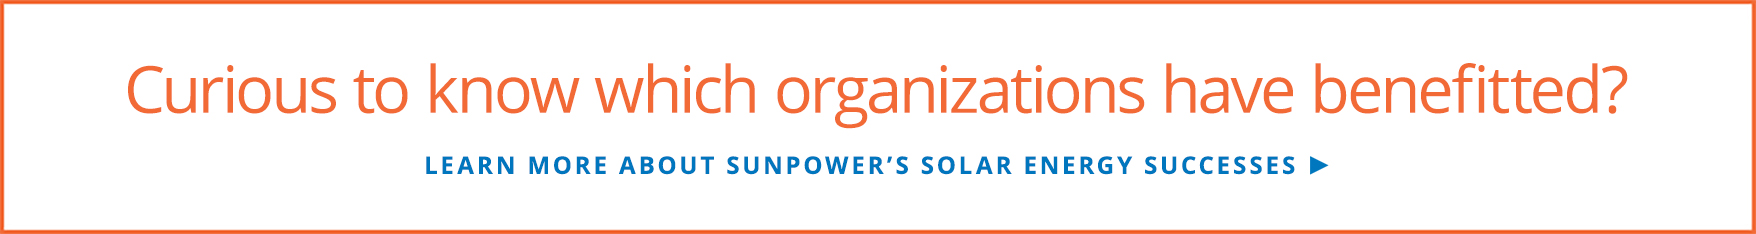 Learn more about SunPower's solar energy successes